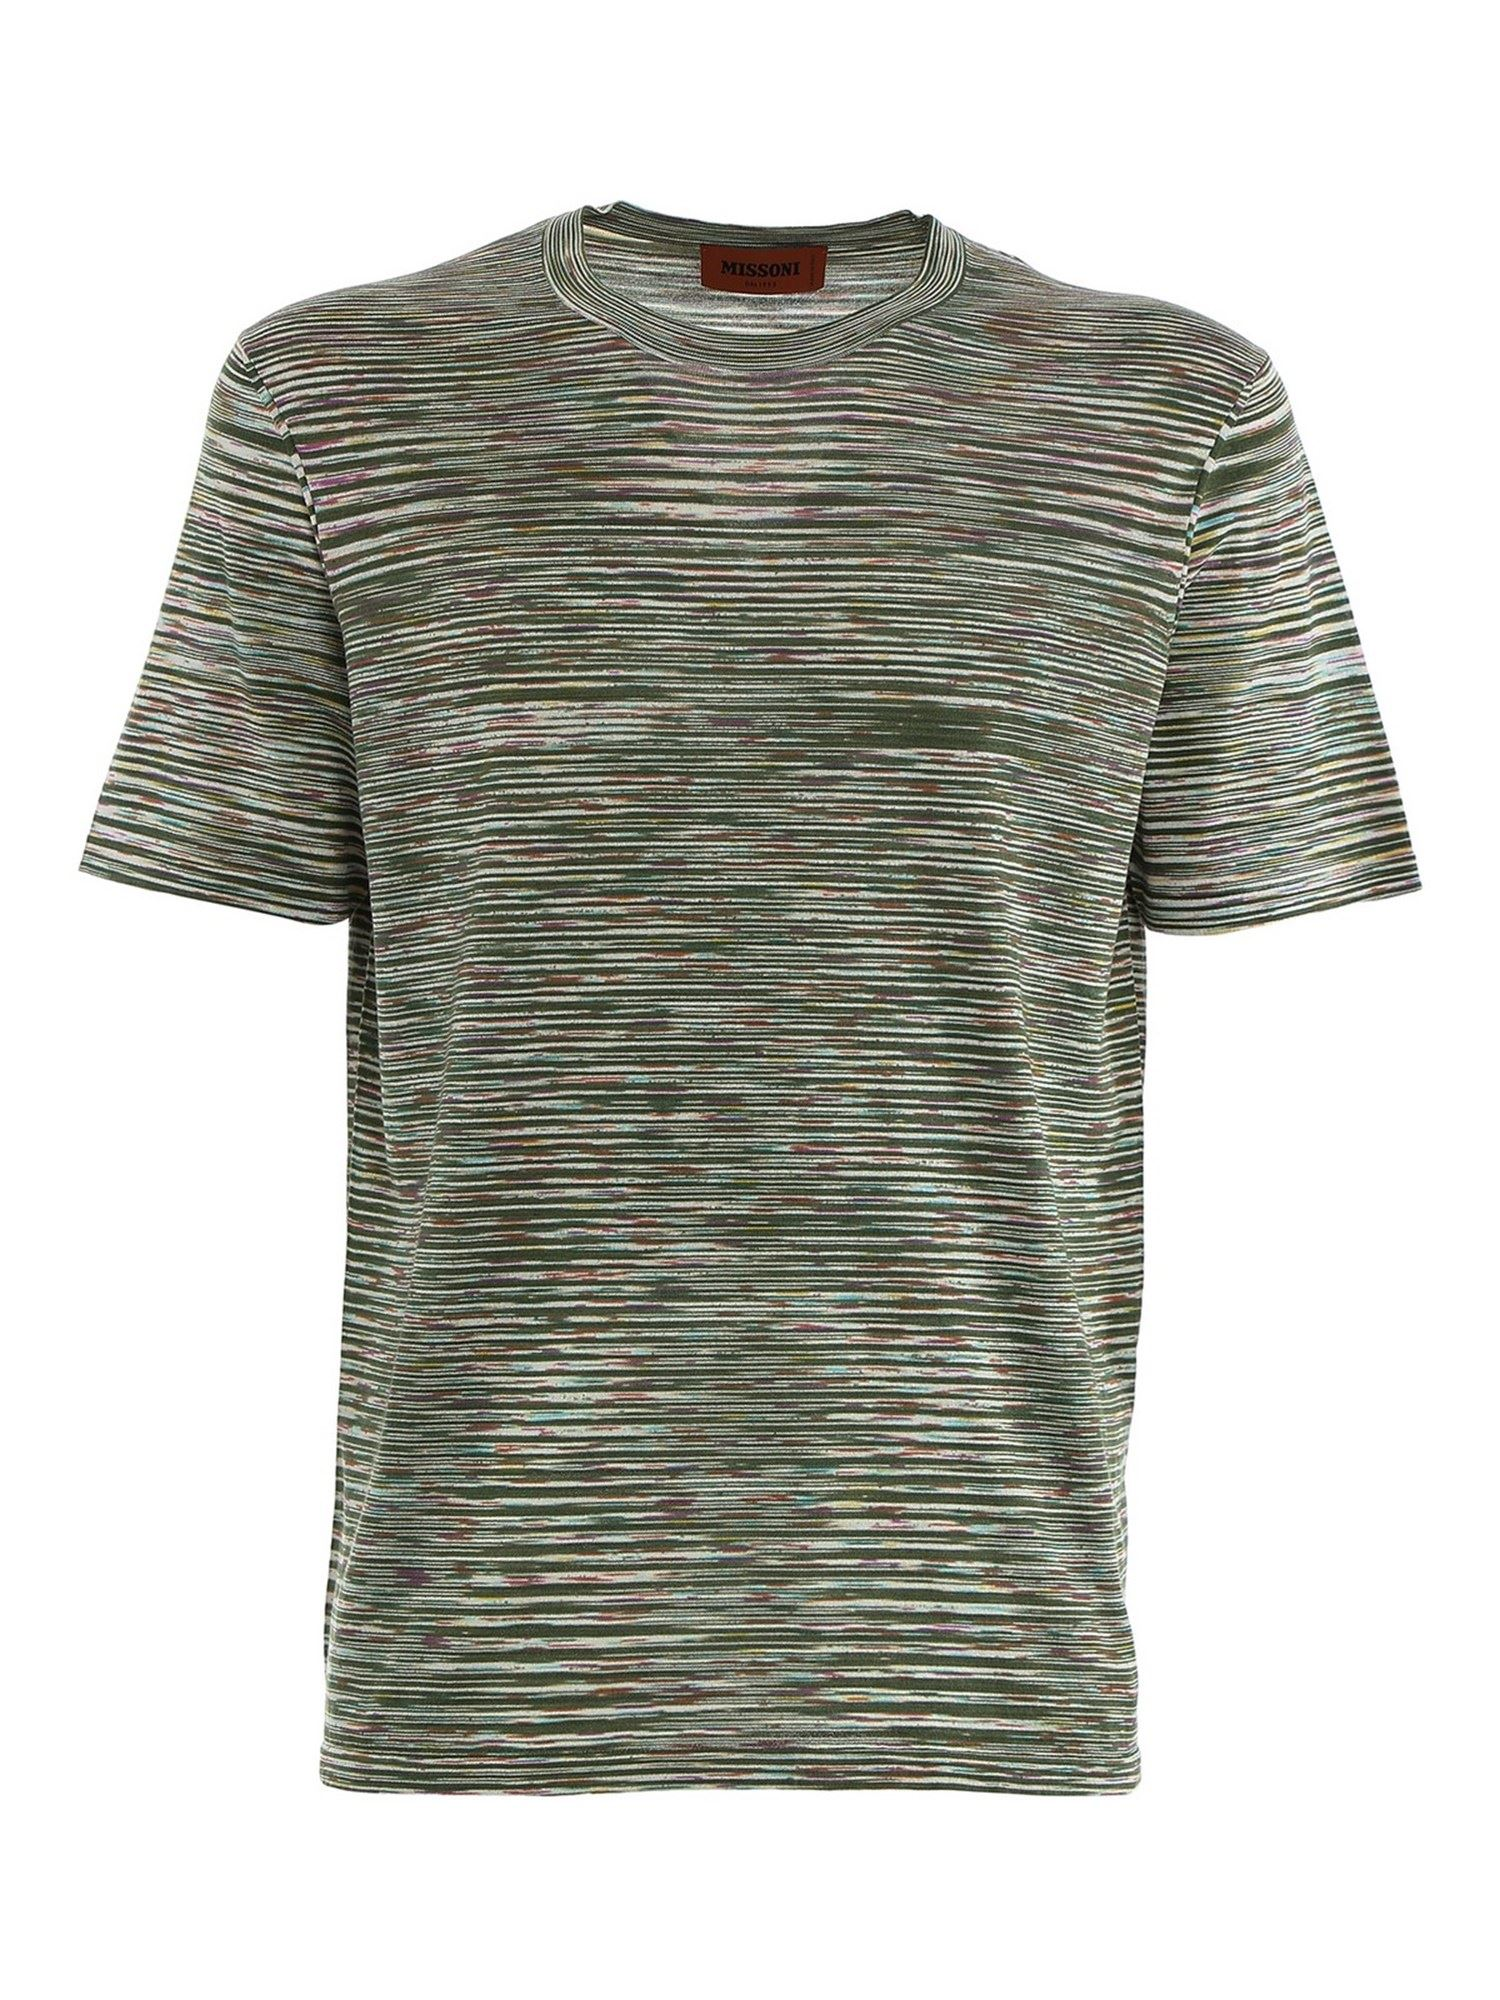 Missoni KNITTED T-SHIRT IN GREEN